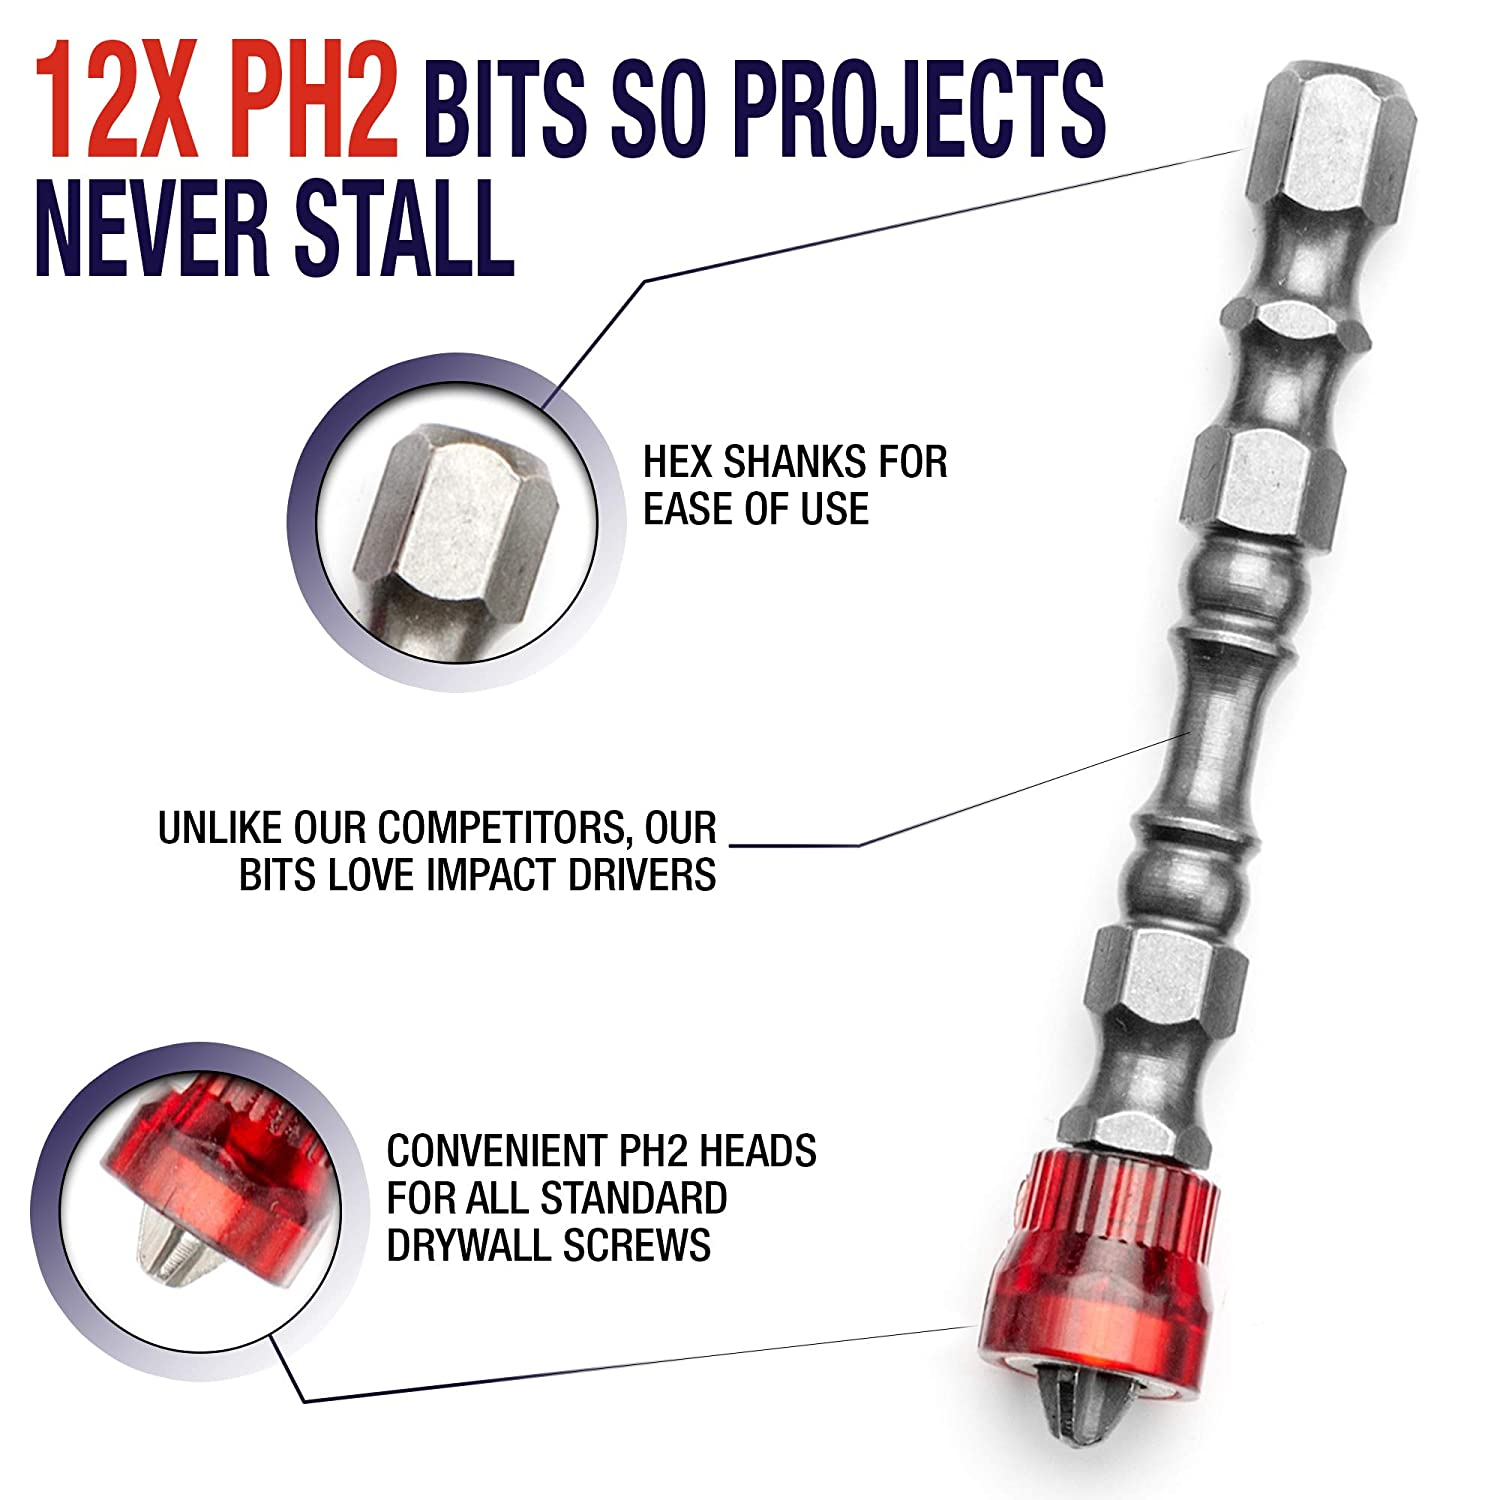 HUGE 12pc SET Magnetic Drywall Screw Setter Bit Set Impact Ready Hex Shank Phillips Head PH2 Drill Driver Bits with Magnetic Collars and Storage Case for Electric Screwdrivers and Drivers